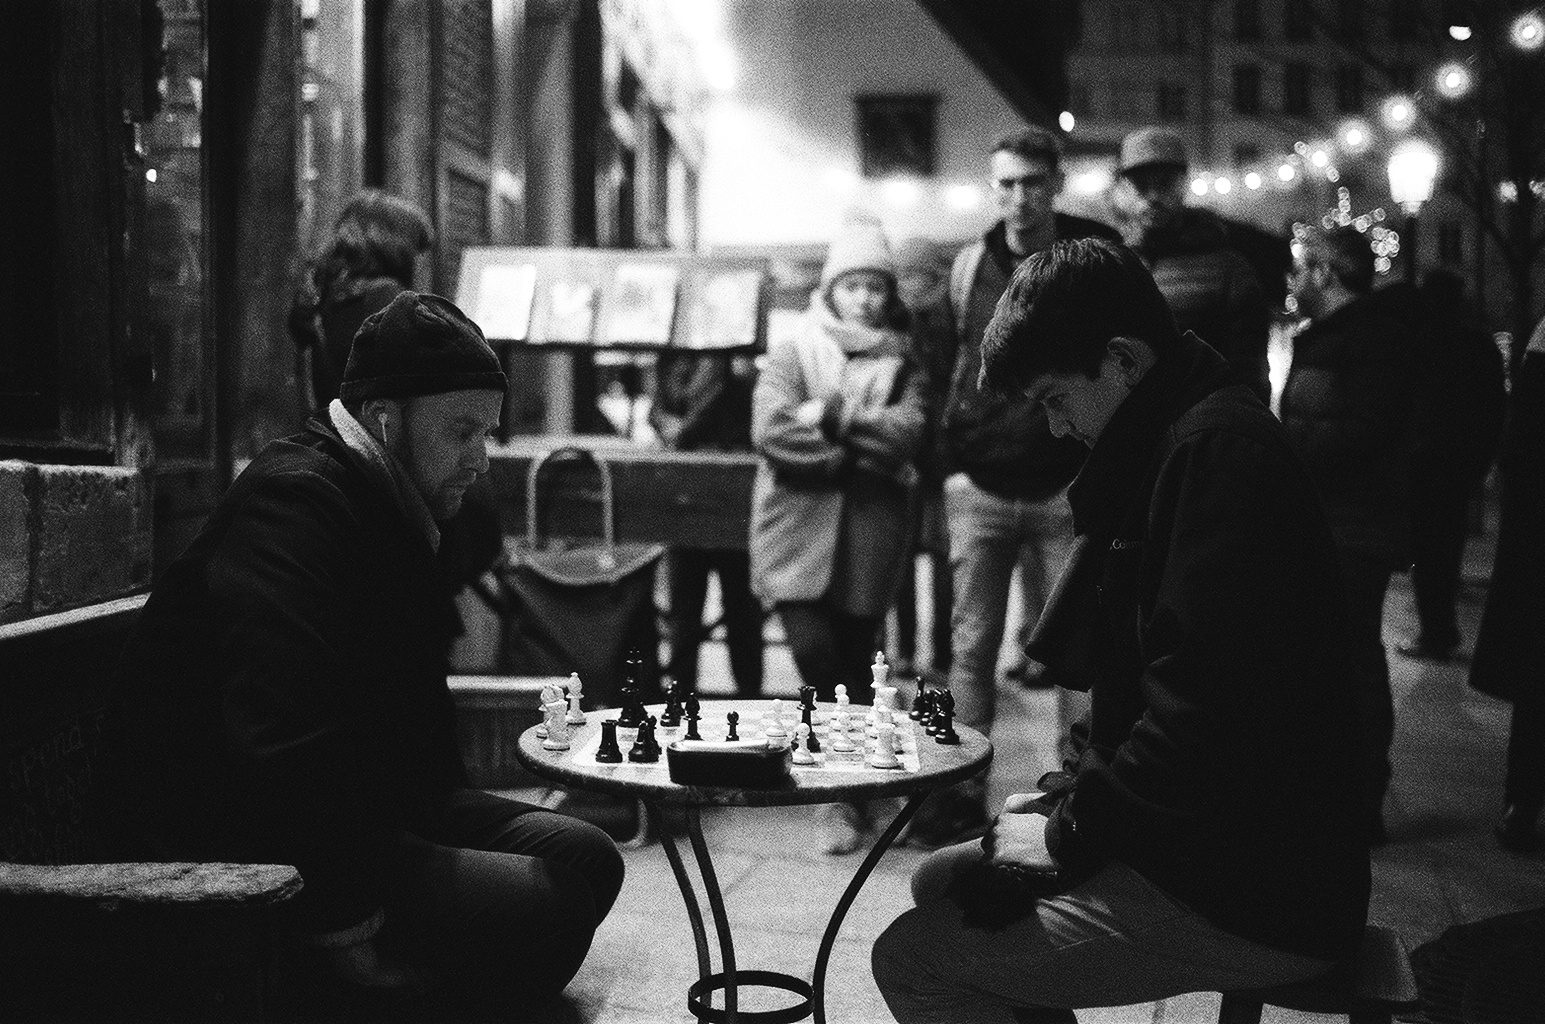 @BlkWhiteFilmPix Replying to @ILFORDPhoto Moved around to capture a bit of #filmbokeh at Shakespeare and Company in Paris on #ilfordphoto Delta 3200. Made the picture with a 35mm lens wide open at f1.4 #fridayfavourites